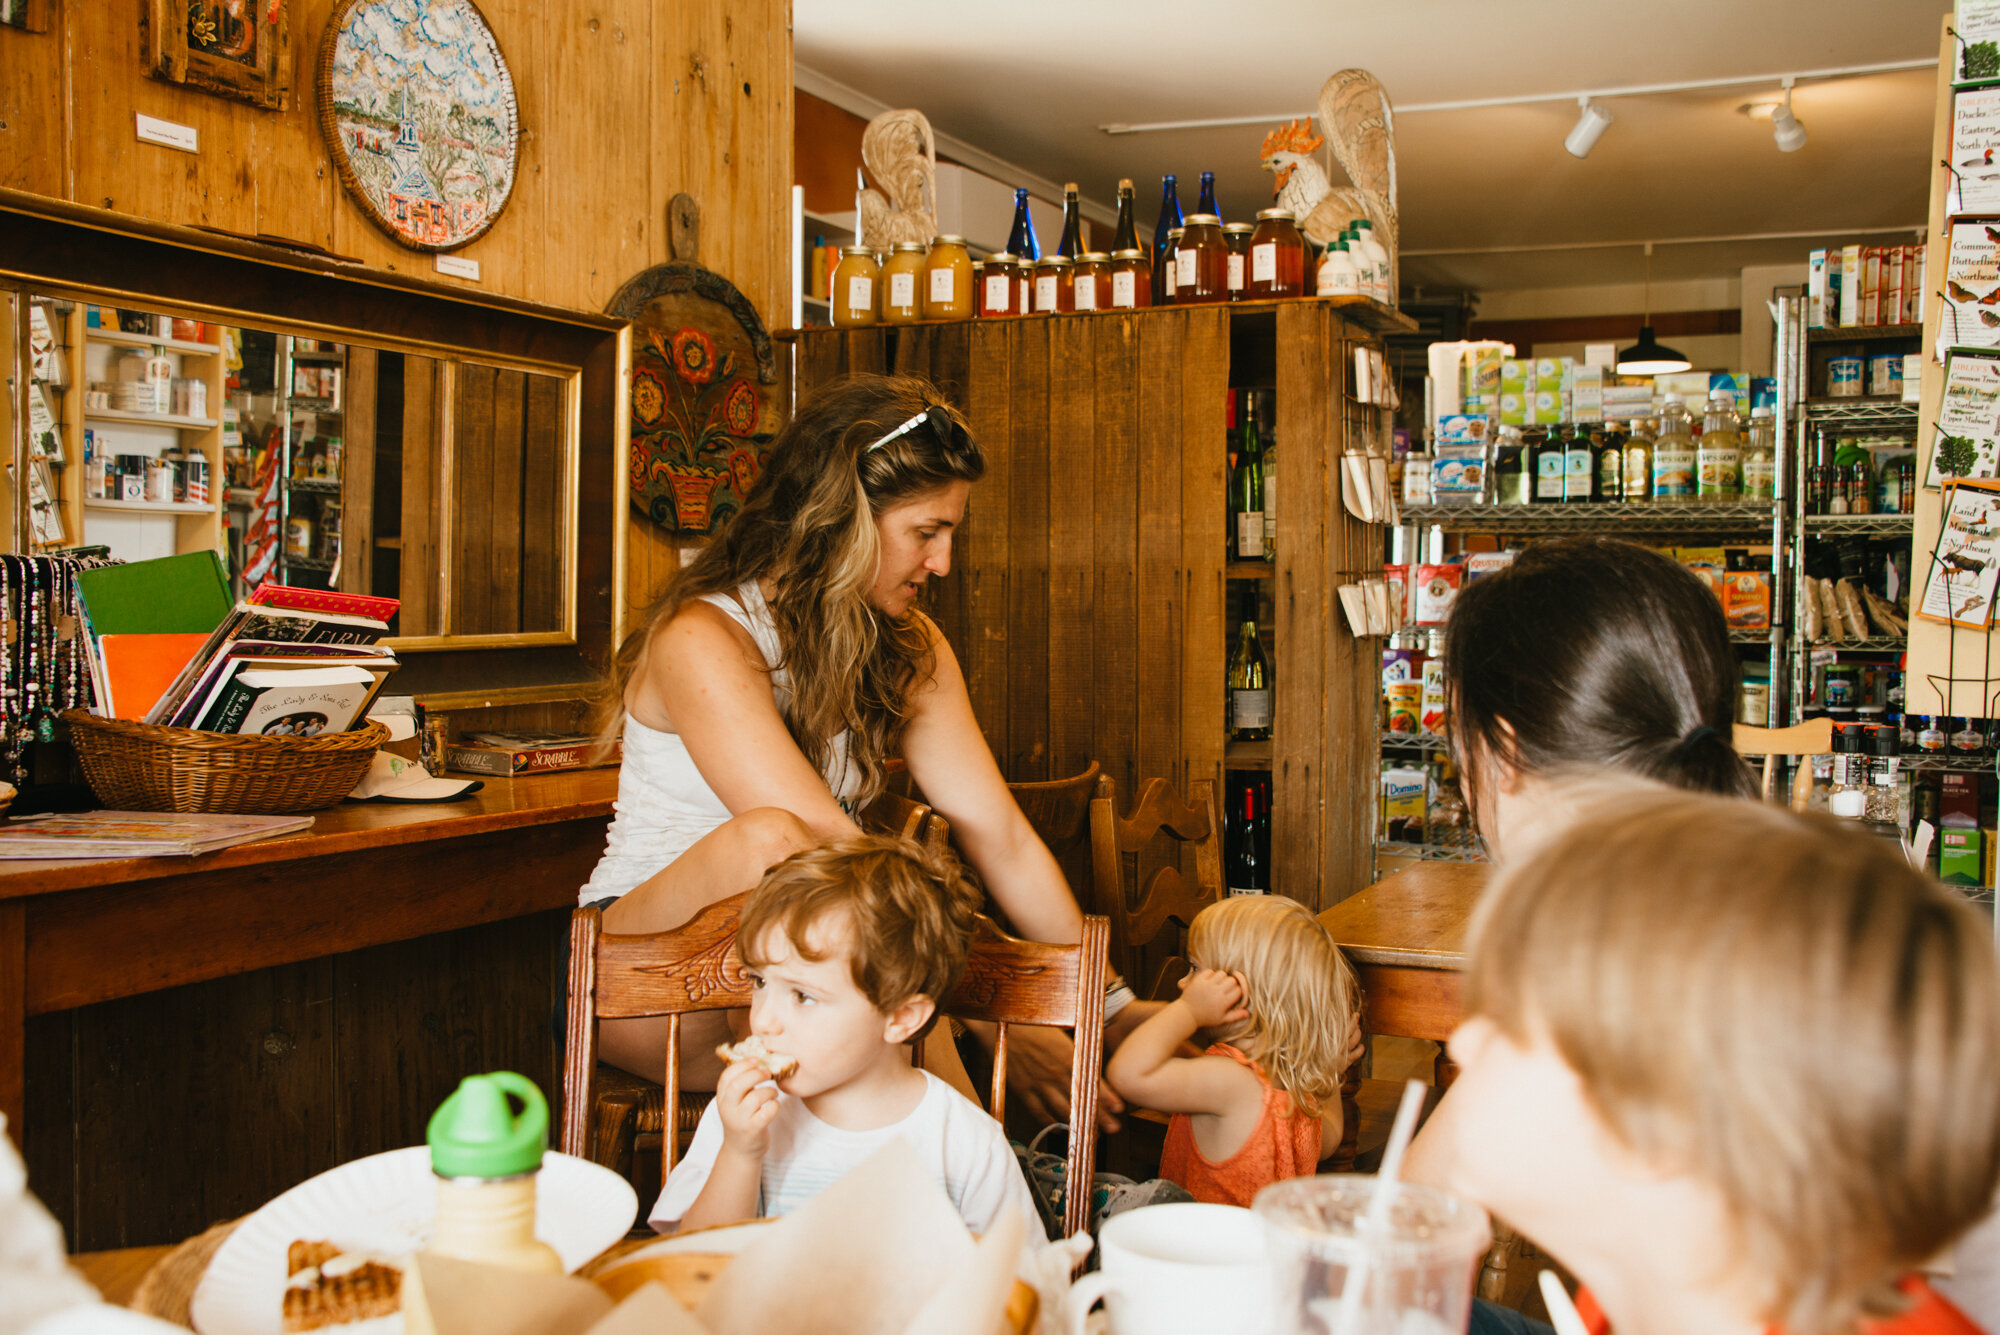 A woman surrounded by kids in a general store in Harrisburg, New Hampshire, United States.